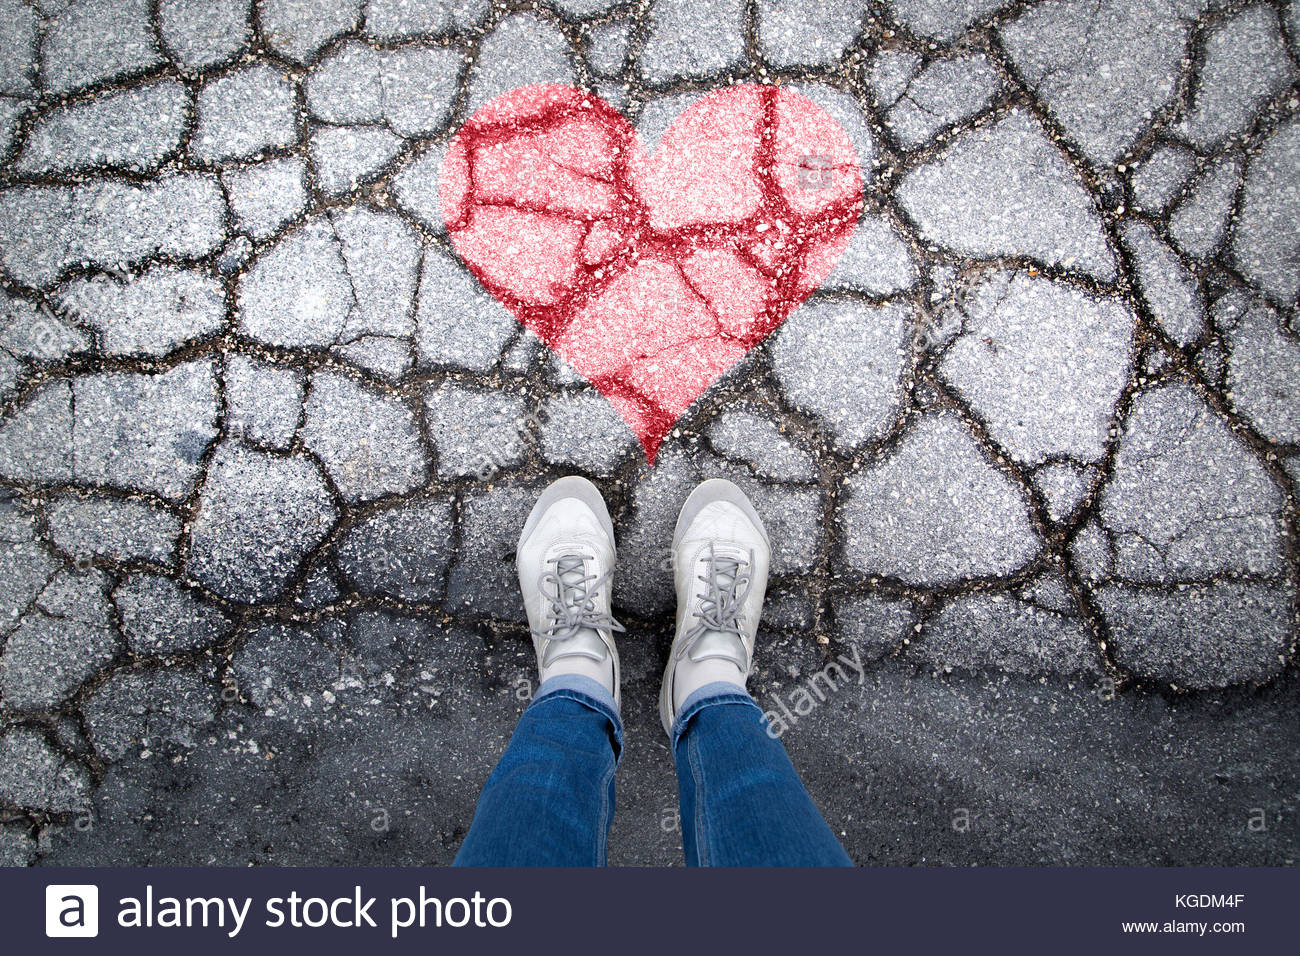 Person stands on cracked asphalt floor with painted red heart symbol. Personal perspective used. - Stock Image